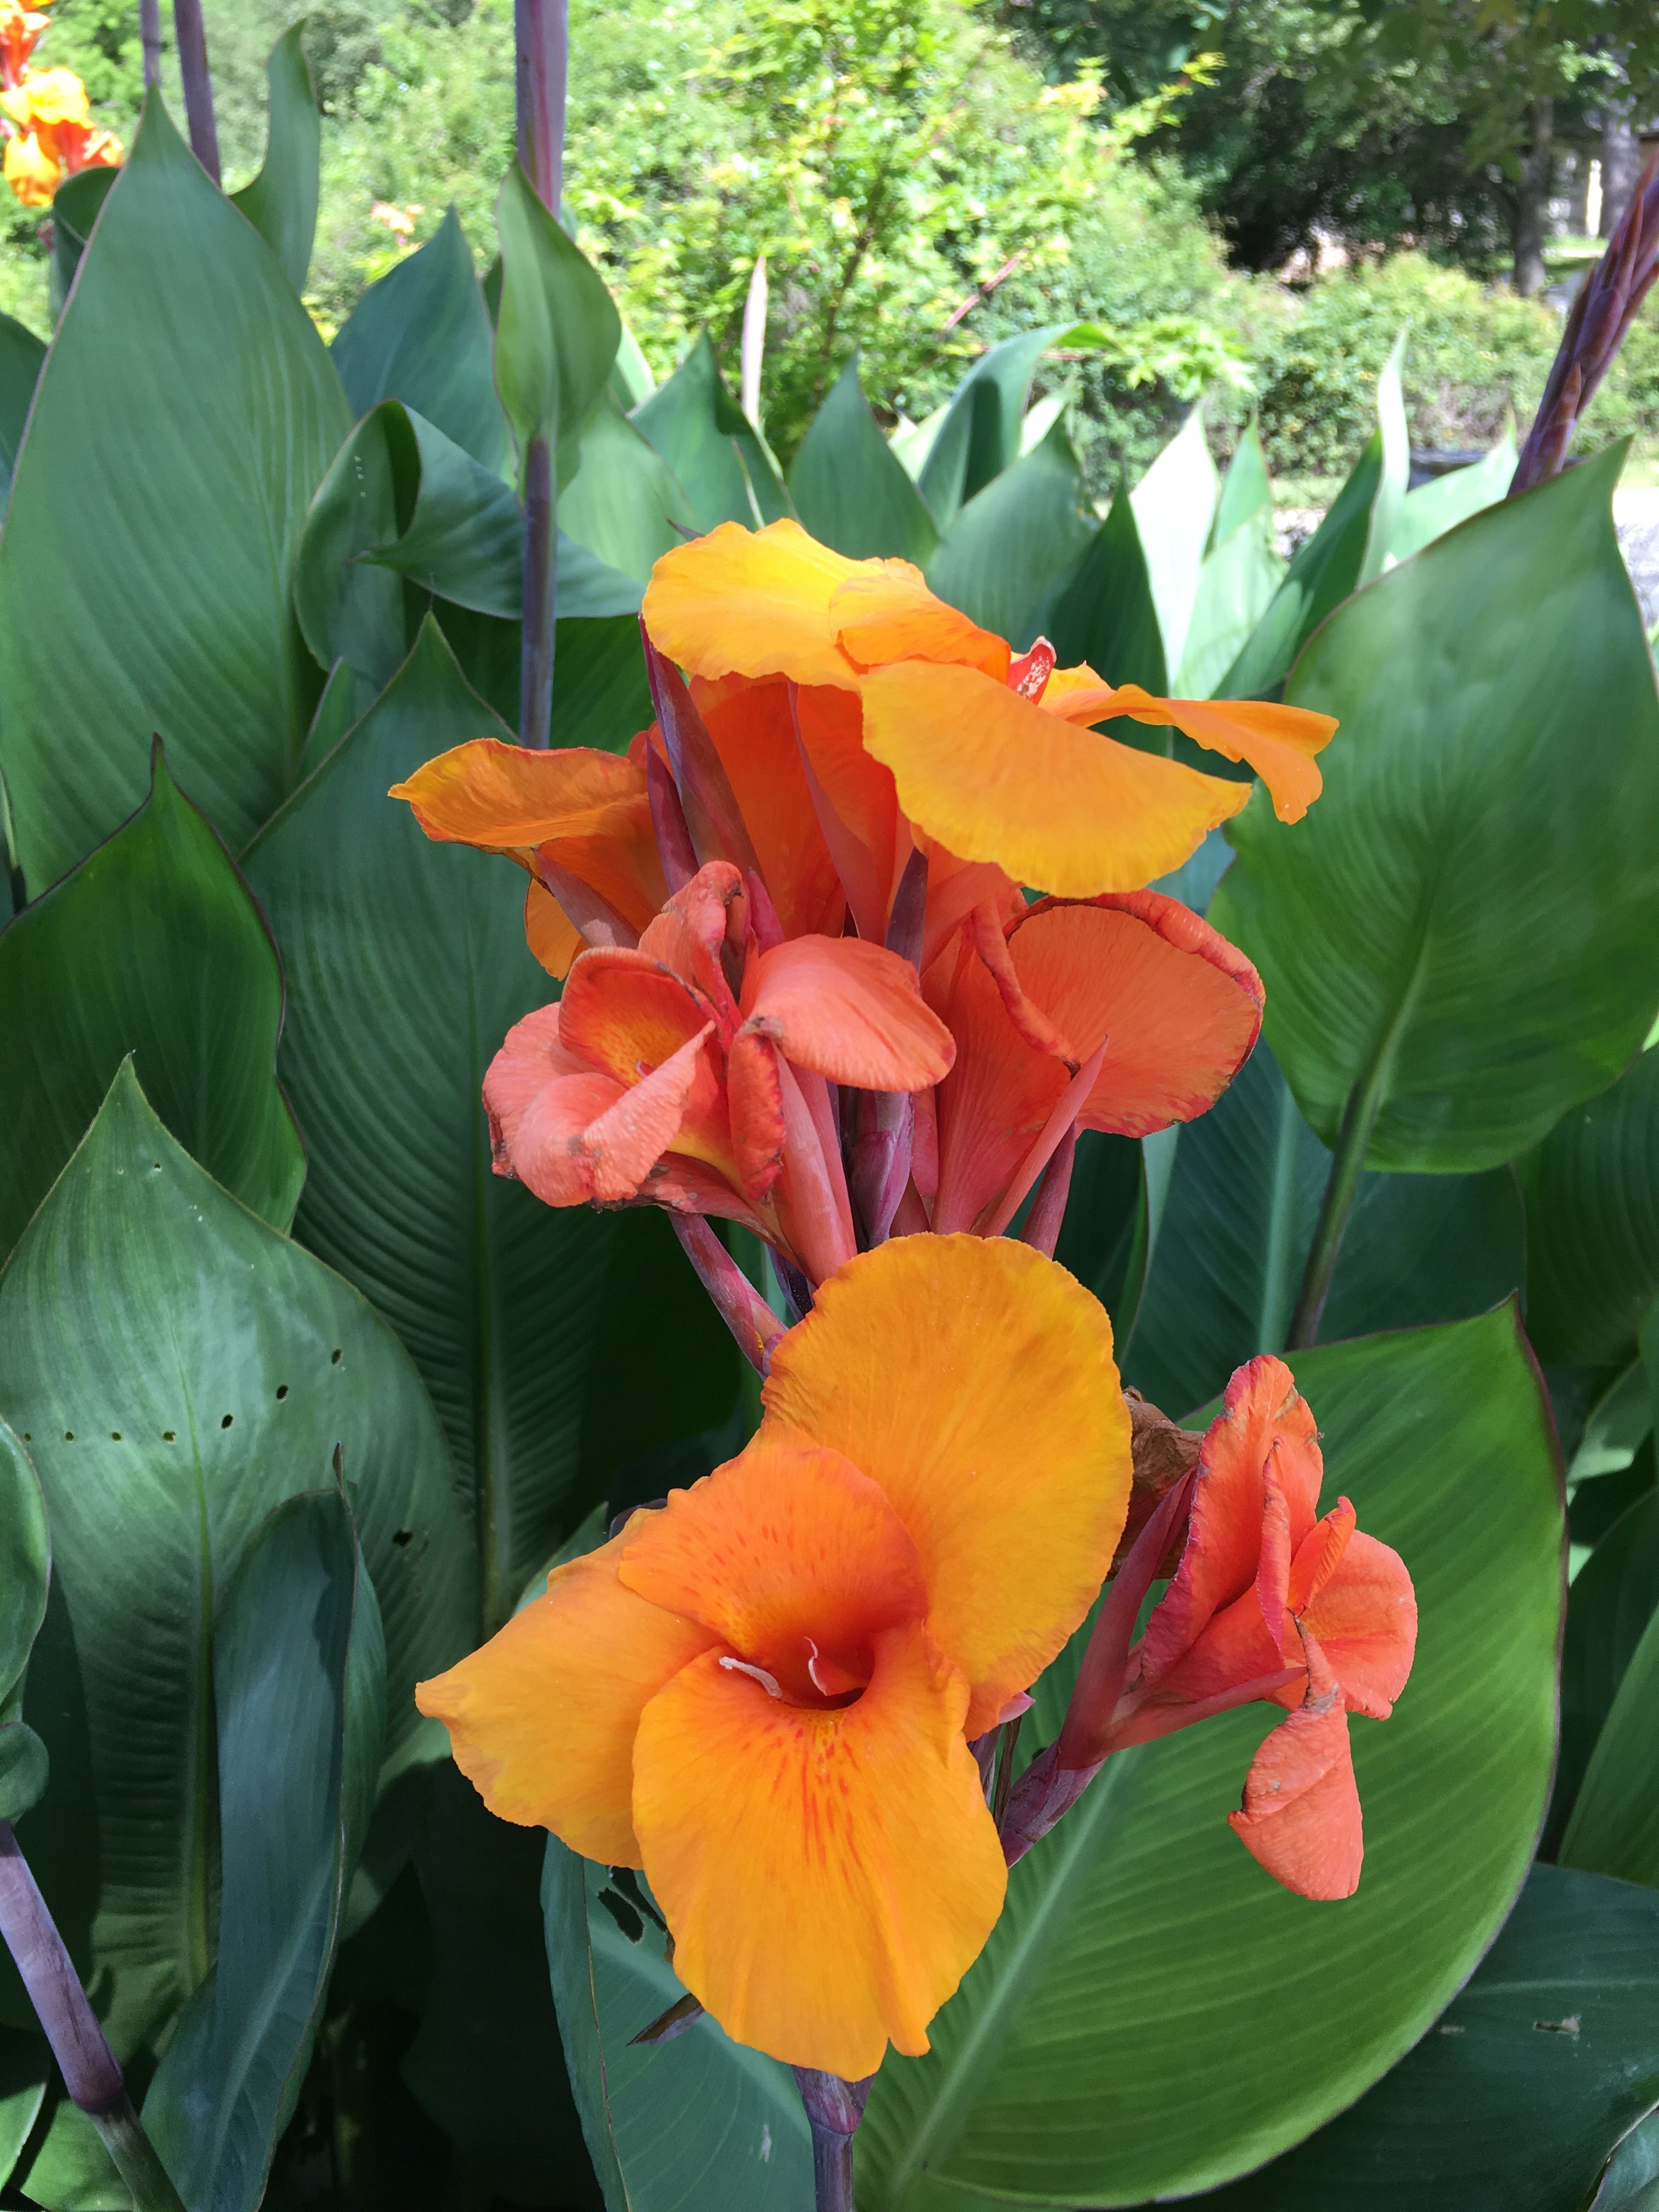 Canna indica canna lilies grows 4 8ft full sun perennial canna indica canna lilies grows 4 8ft full sun perennial tuber popular summer bulb blooms summer fall flower is not edible but tubers and izmirmasajfo